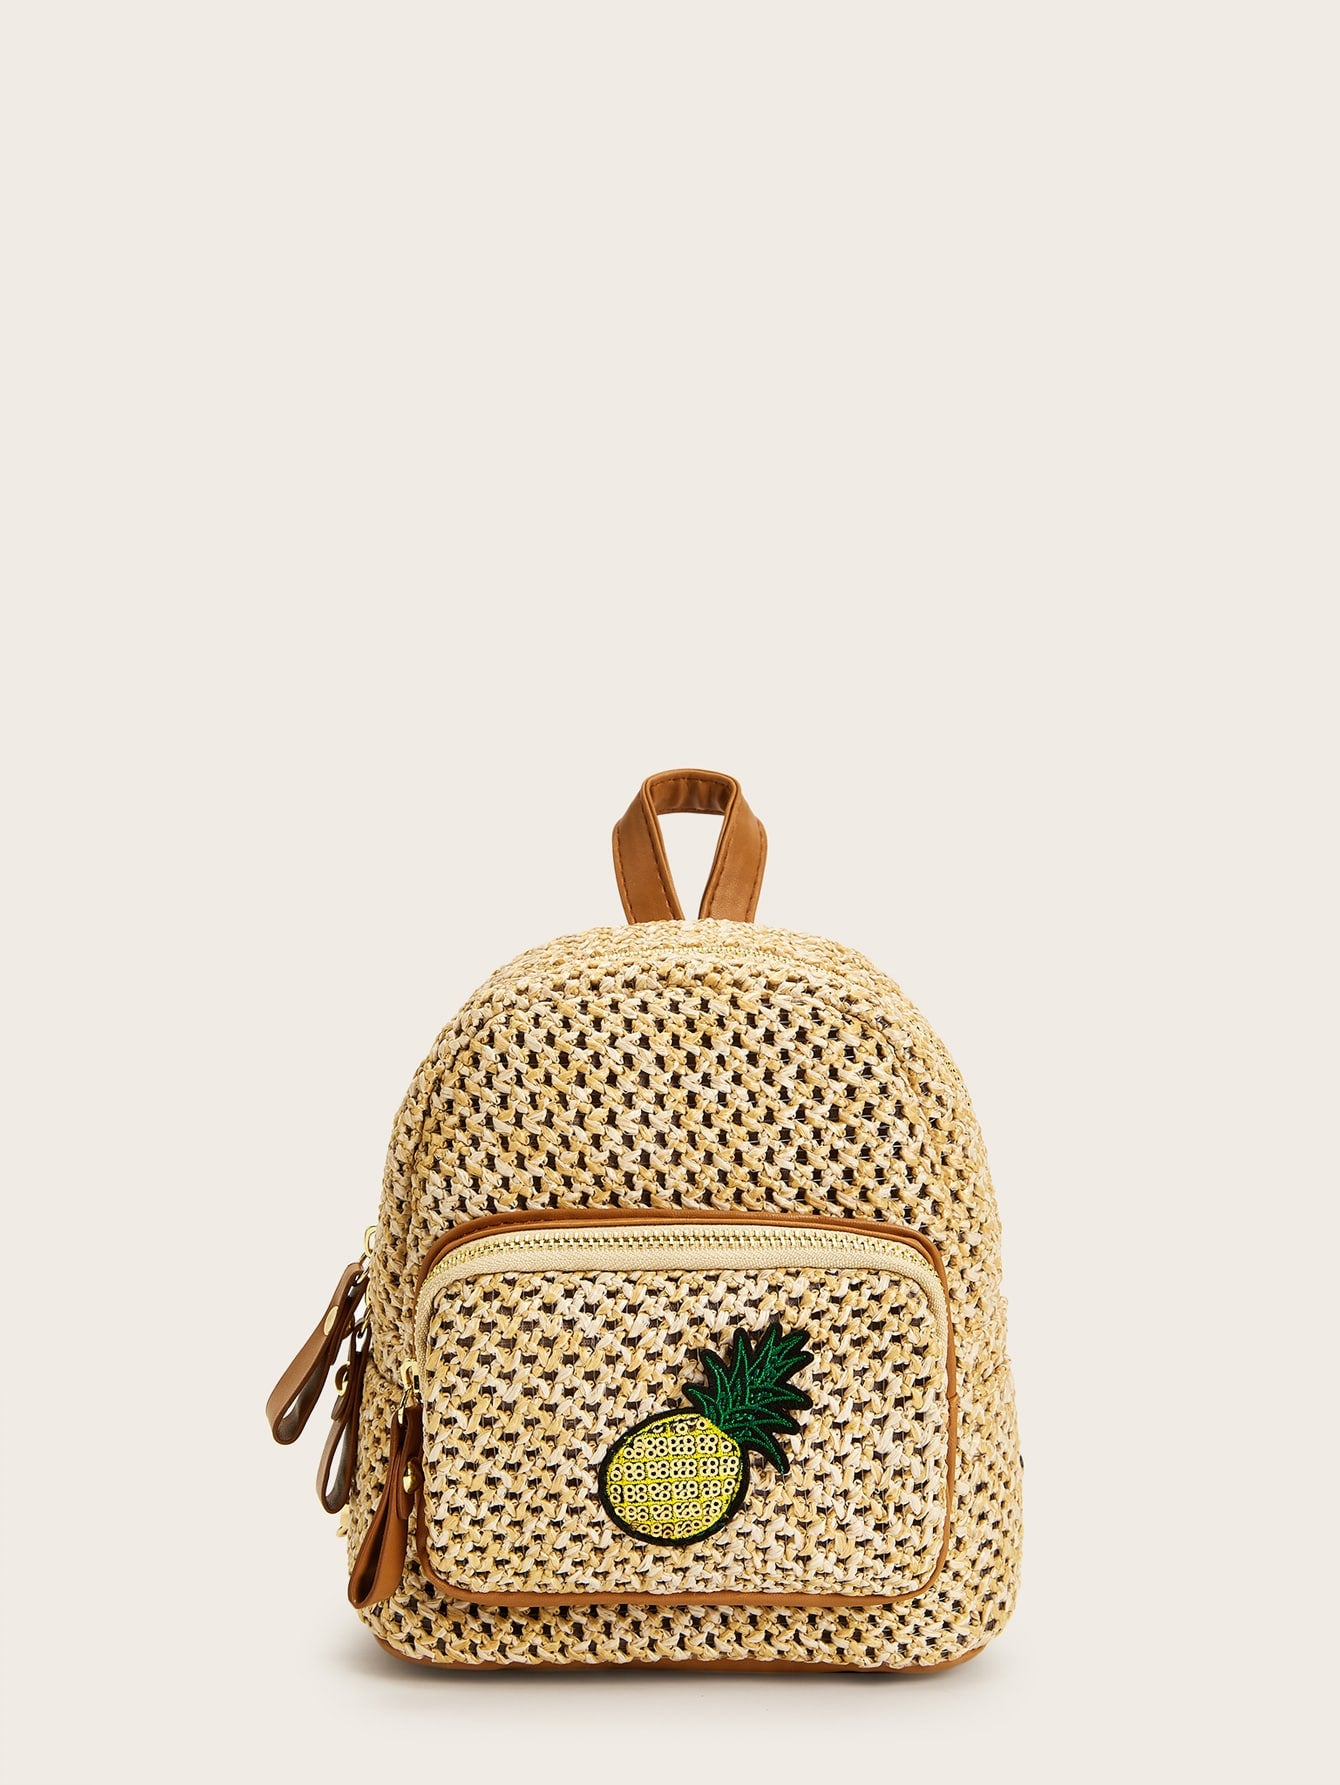 Pineapple Detail Braided Zipper Backpack Bag